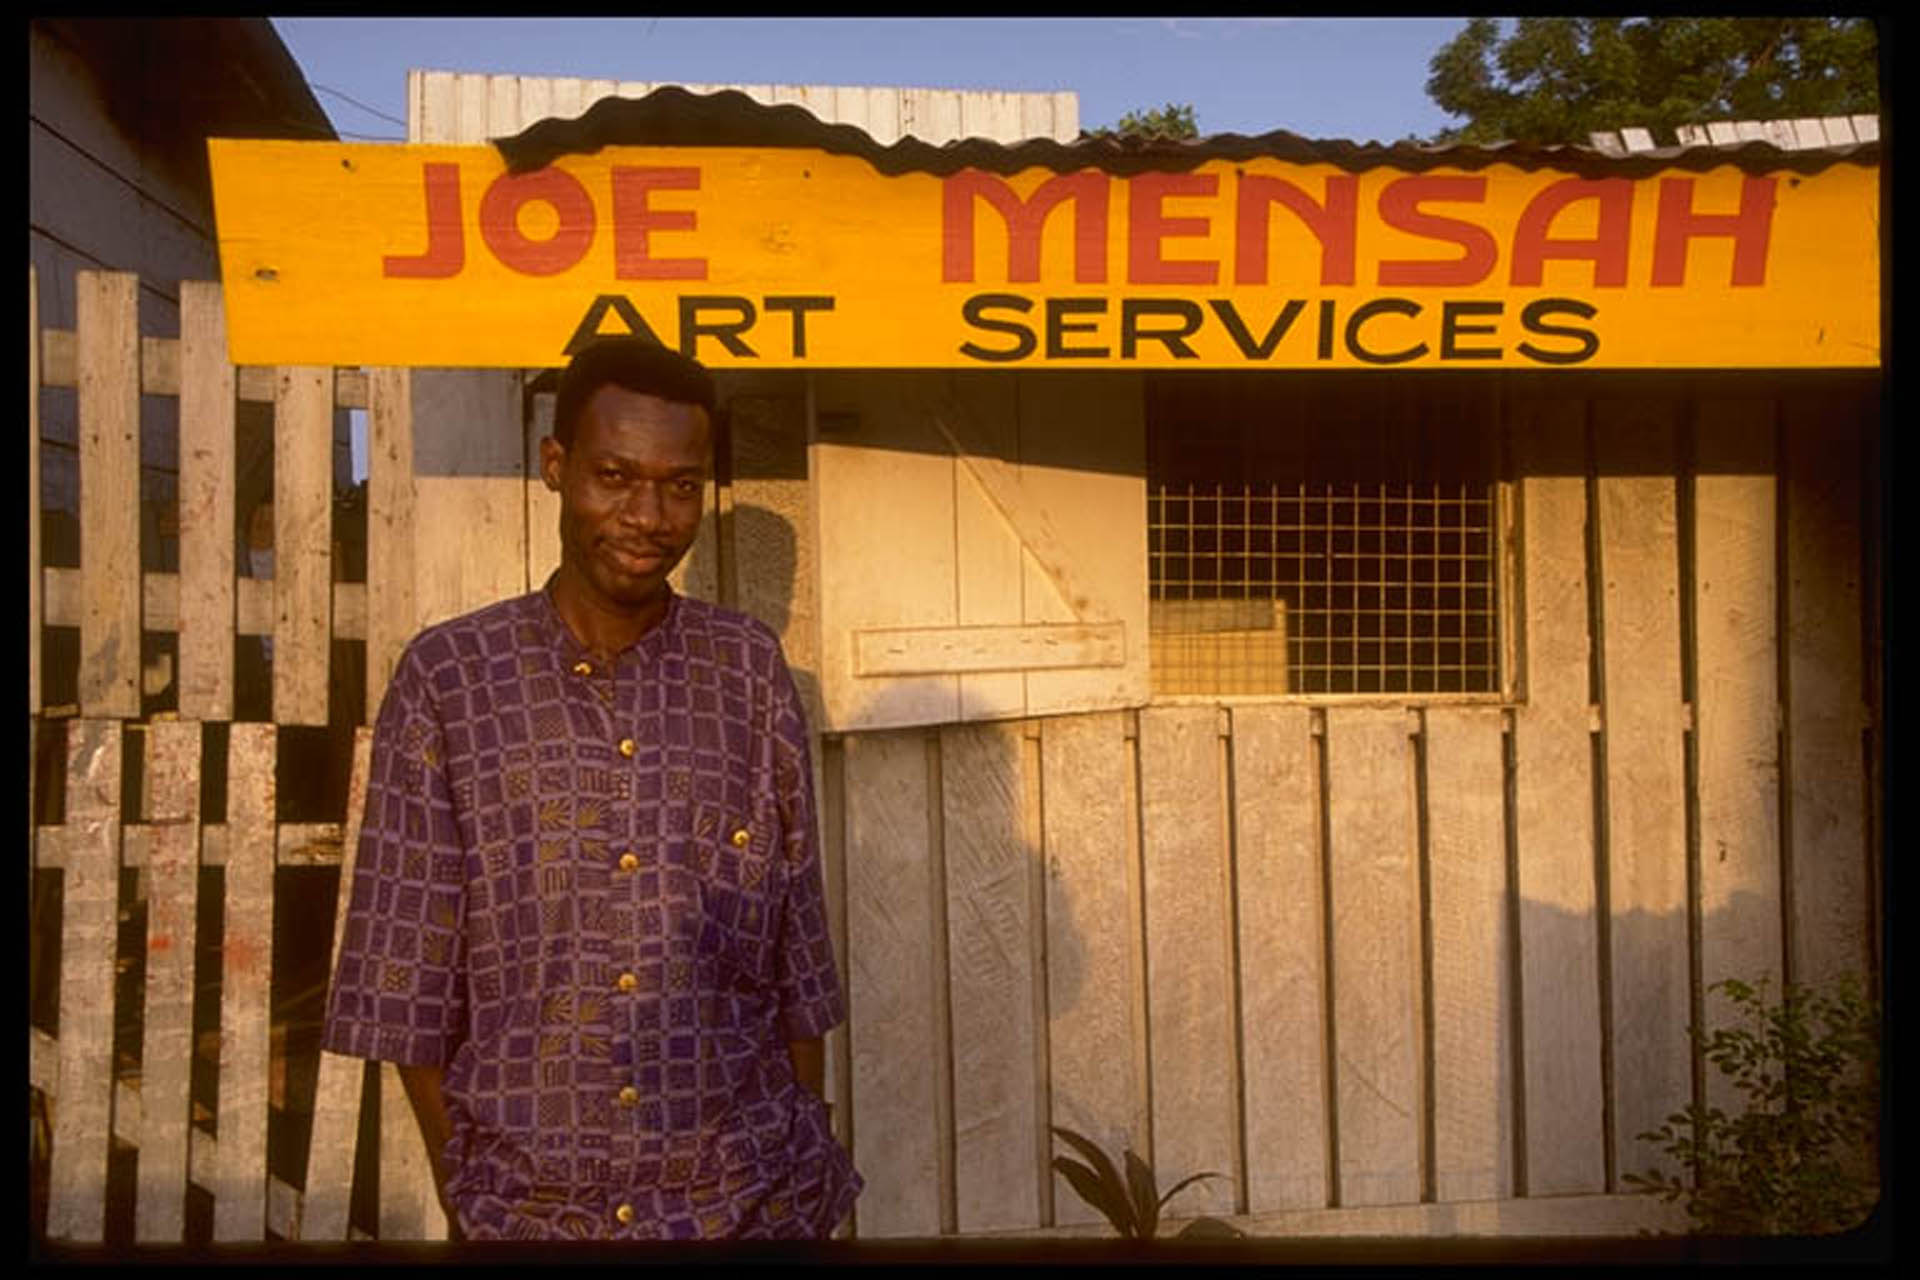 Joe Mensah in front of Joe Mensah Art Services, 1998